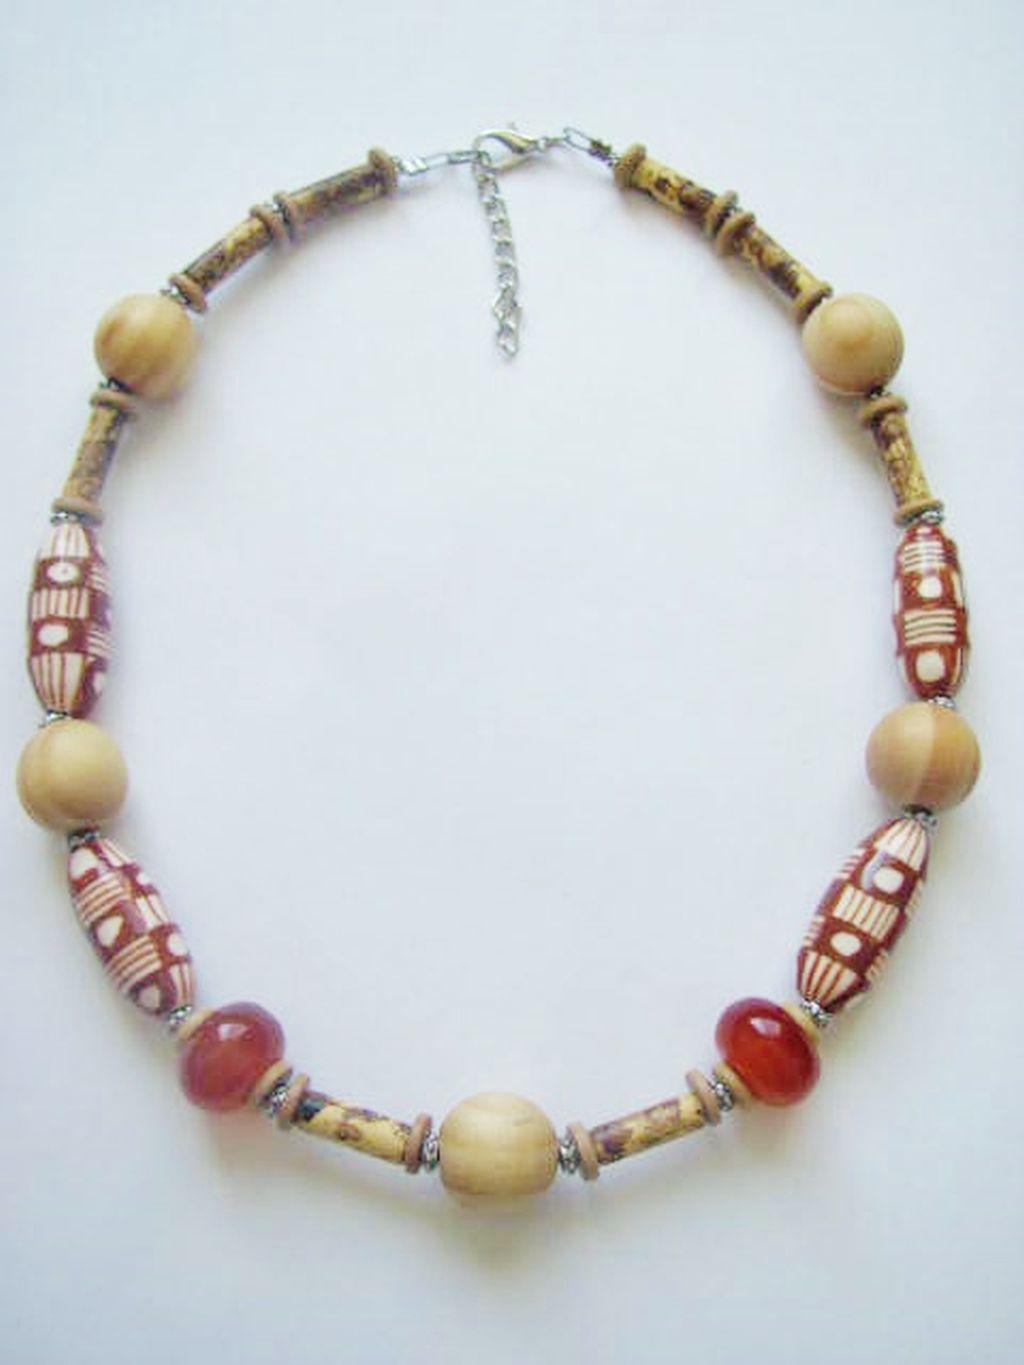 Dune Print Large Wood & Stone Bead Surfer Beach Necklace, Men's Unisex